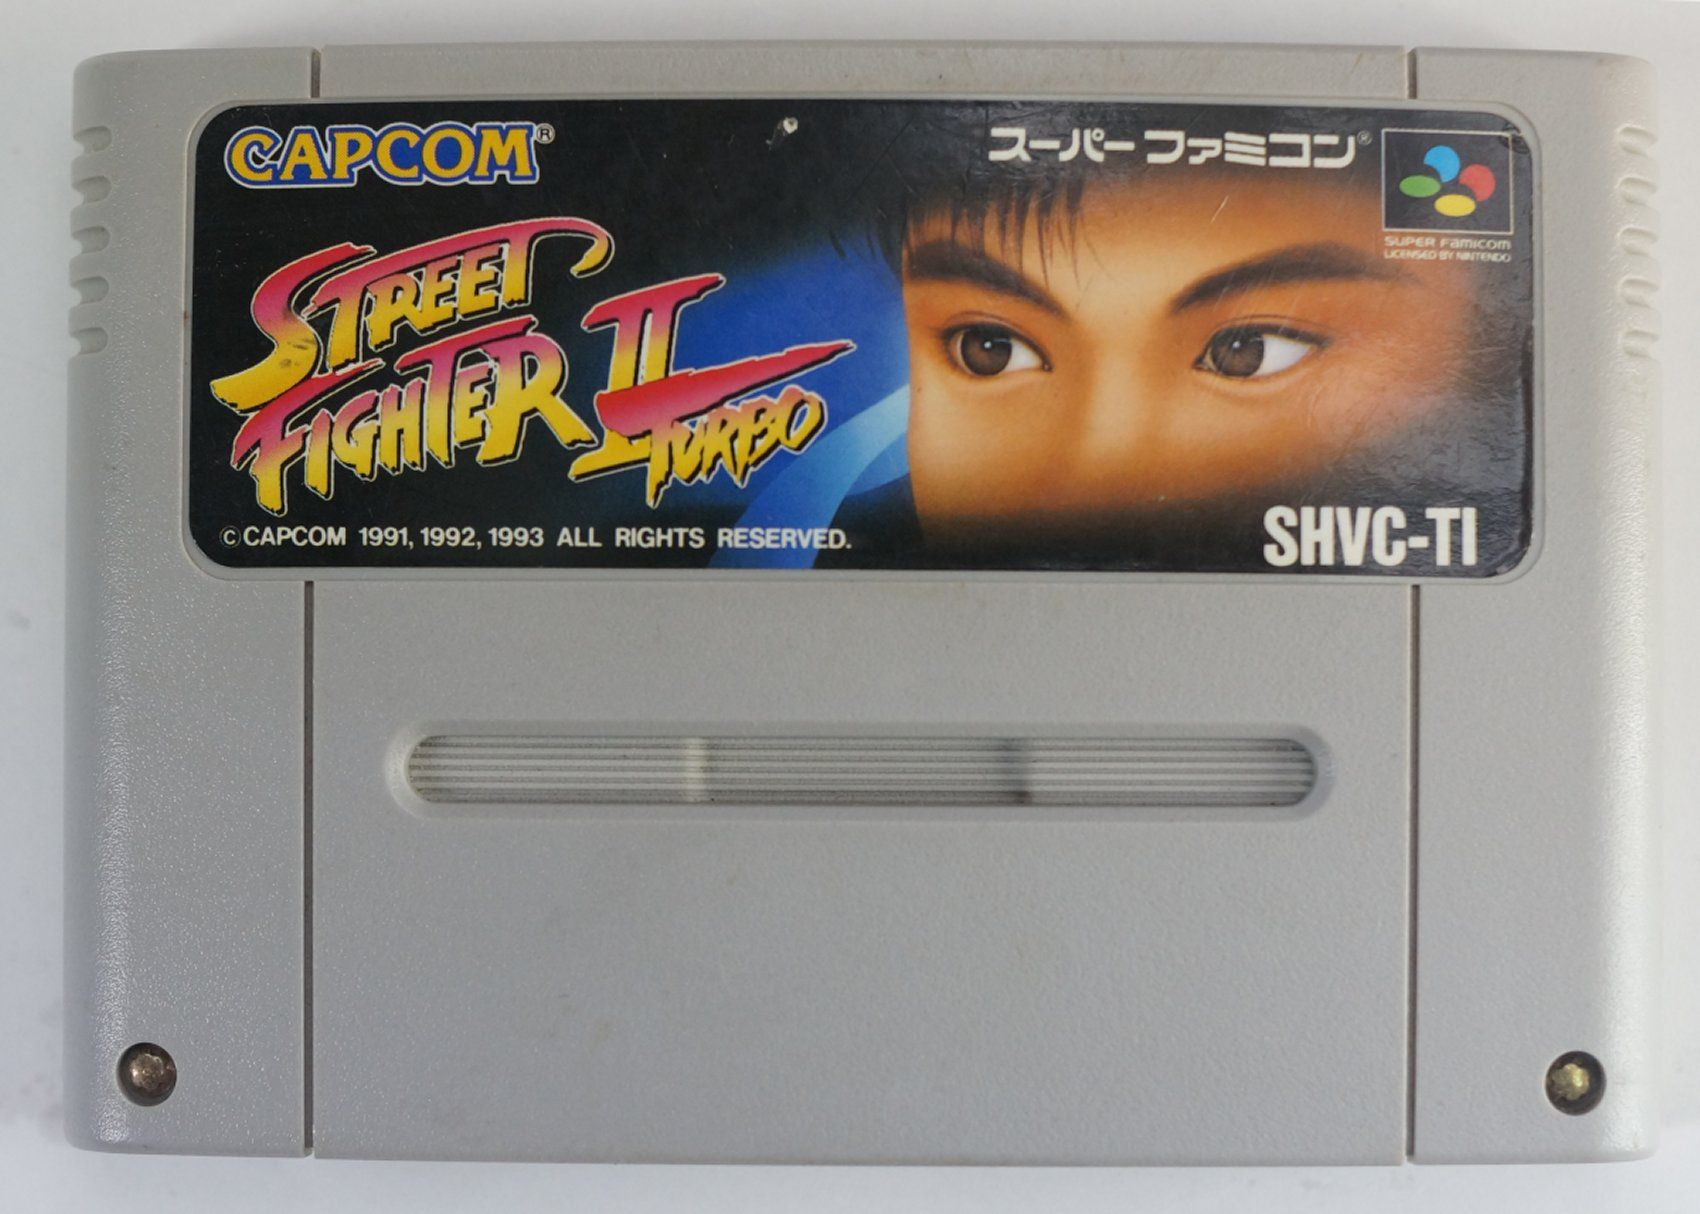 Super ‪#‎Famicom‬ :  Super Famicom : Street Fighter II Turbo SHVC-TI http://www.japanstuff.biz/ CLICK THE FOLLOWING LINK TO BUY IT ( IF STILL AVAILABLE ) http://www.delcampe.net/page/item/id,0366378852,language,E.html